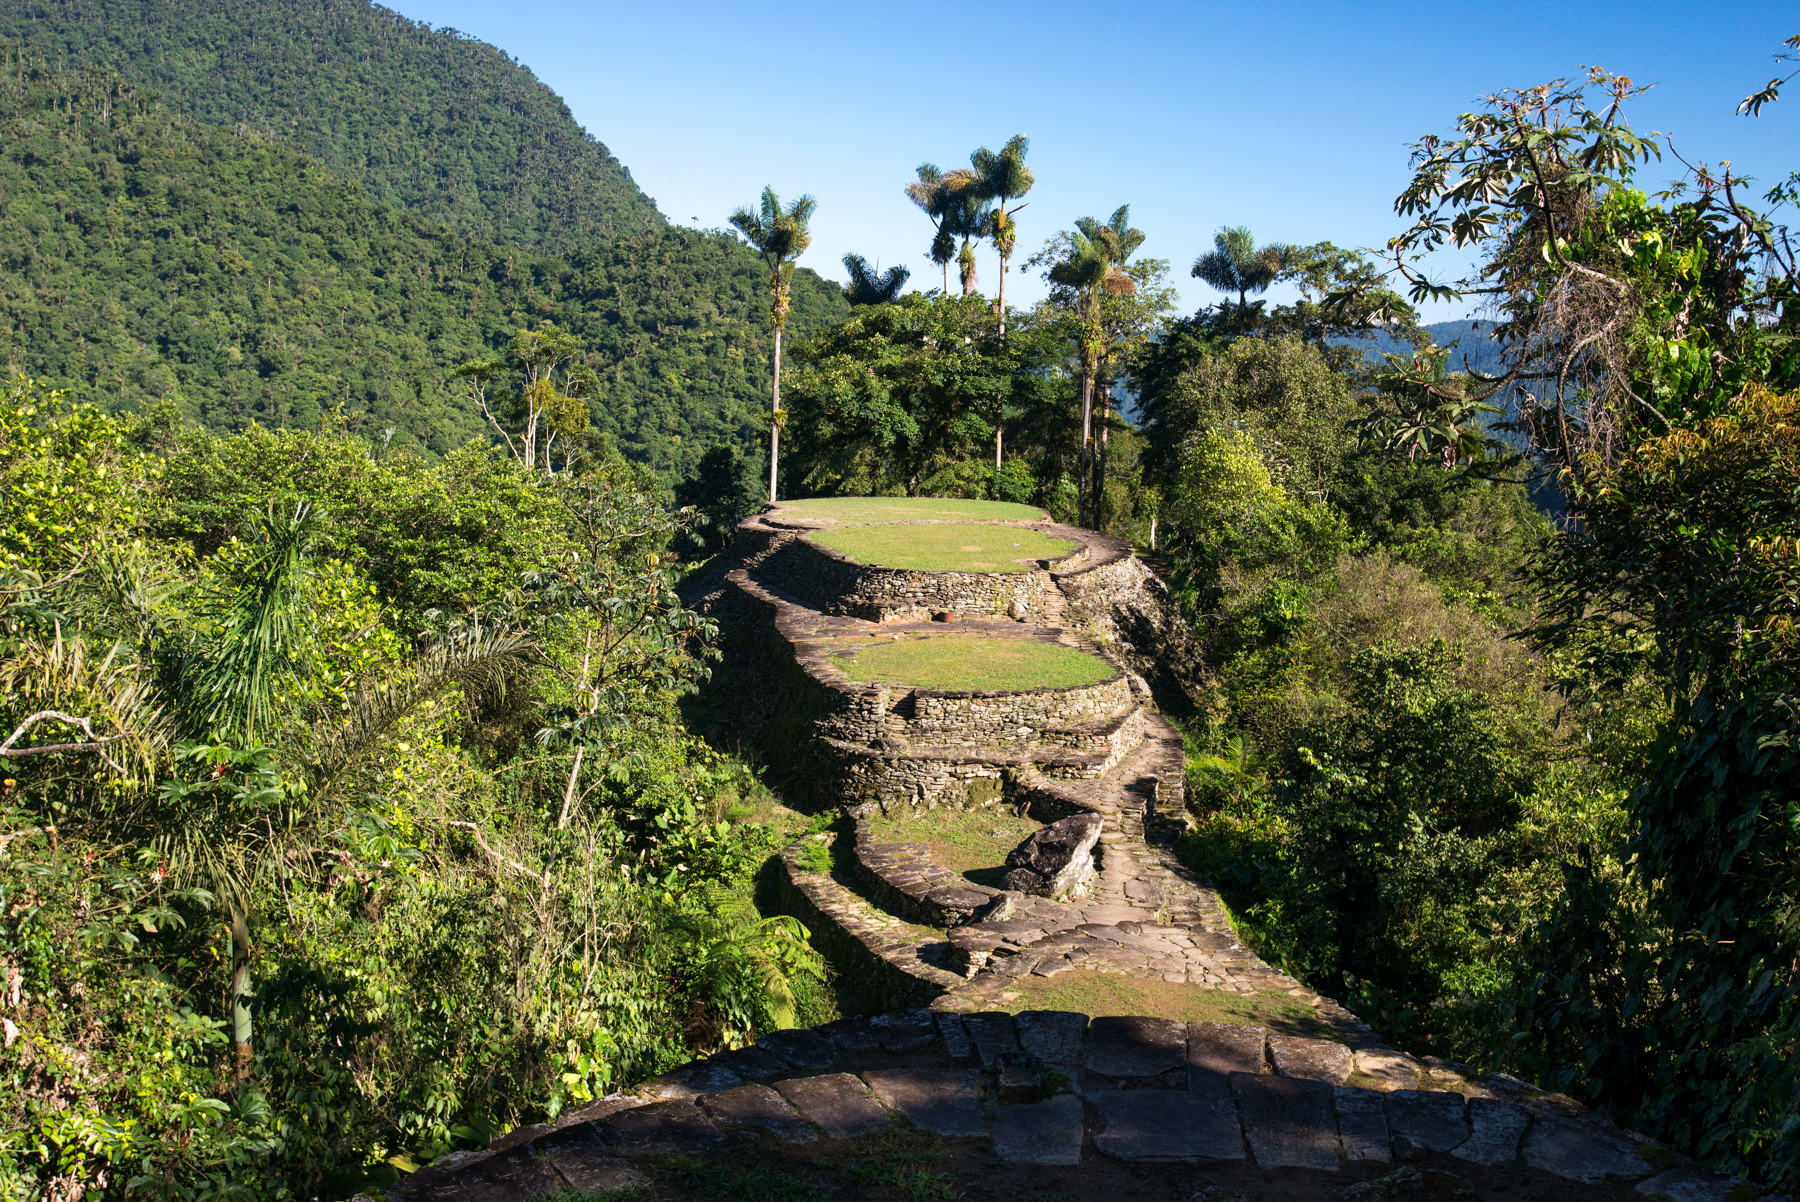 Colombia's Lost City or Ciudad Perdida